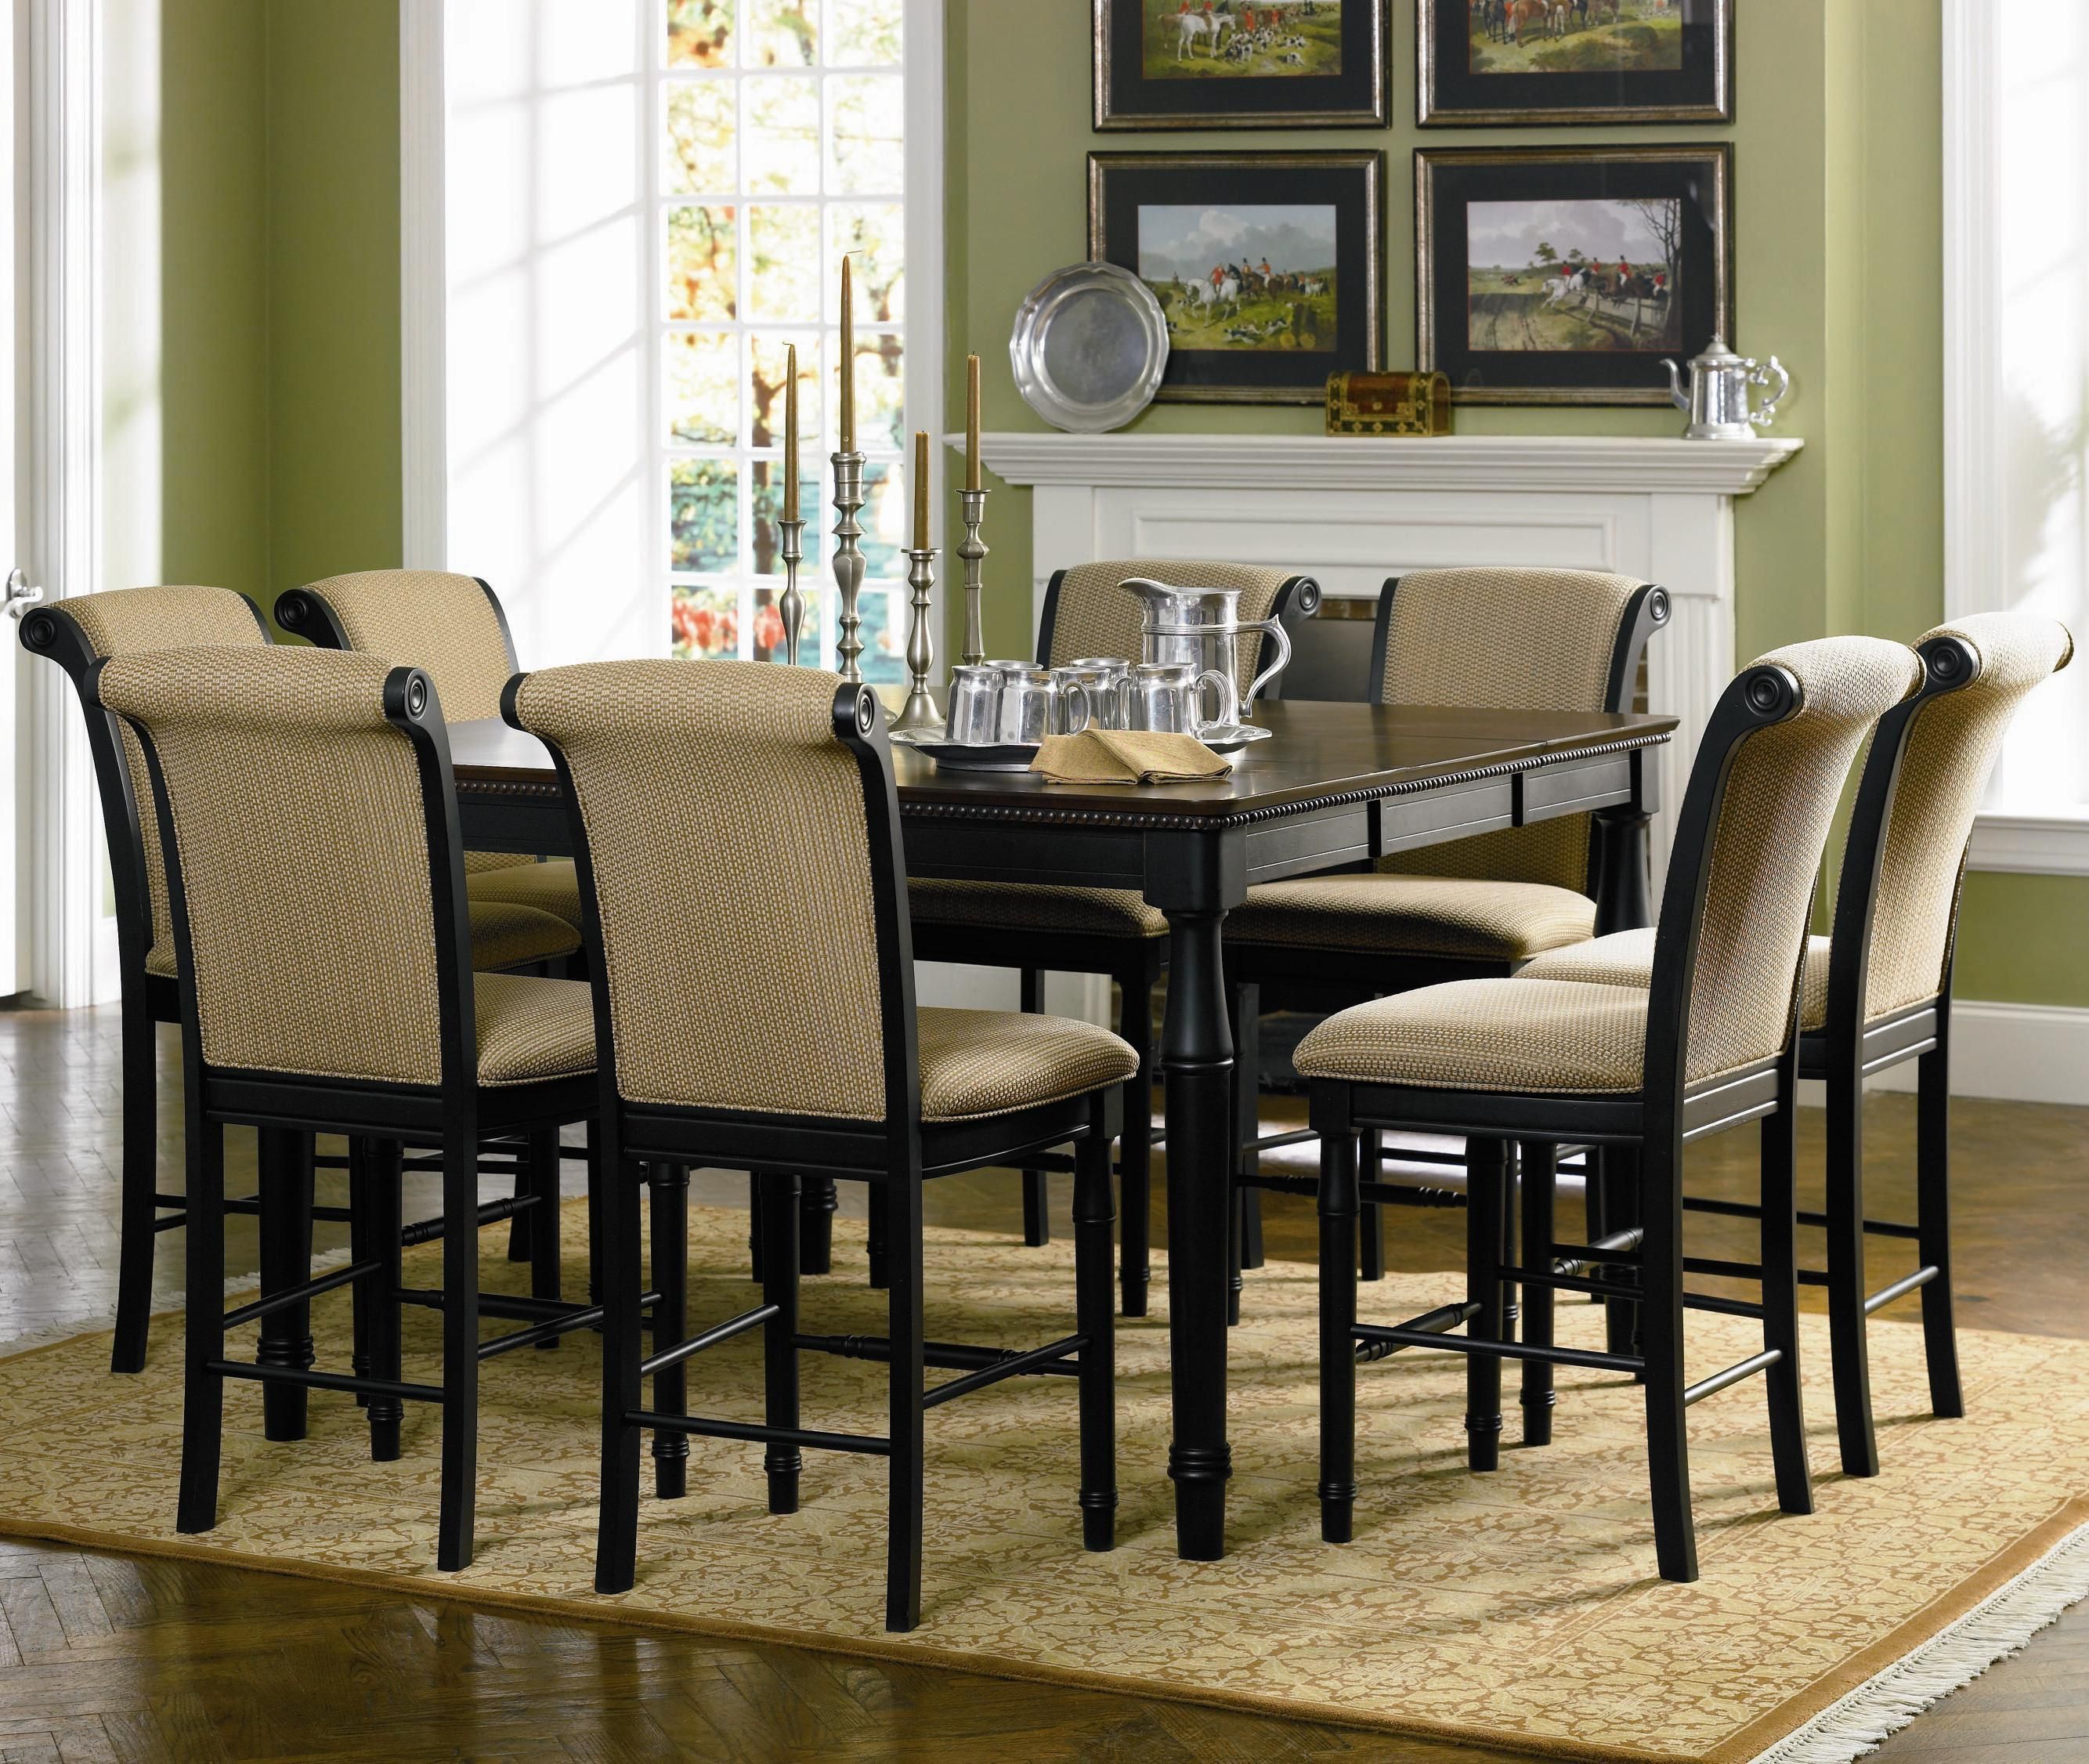 Cabrillo 9 Piece Counter Height Dining Set by Coaster Dining